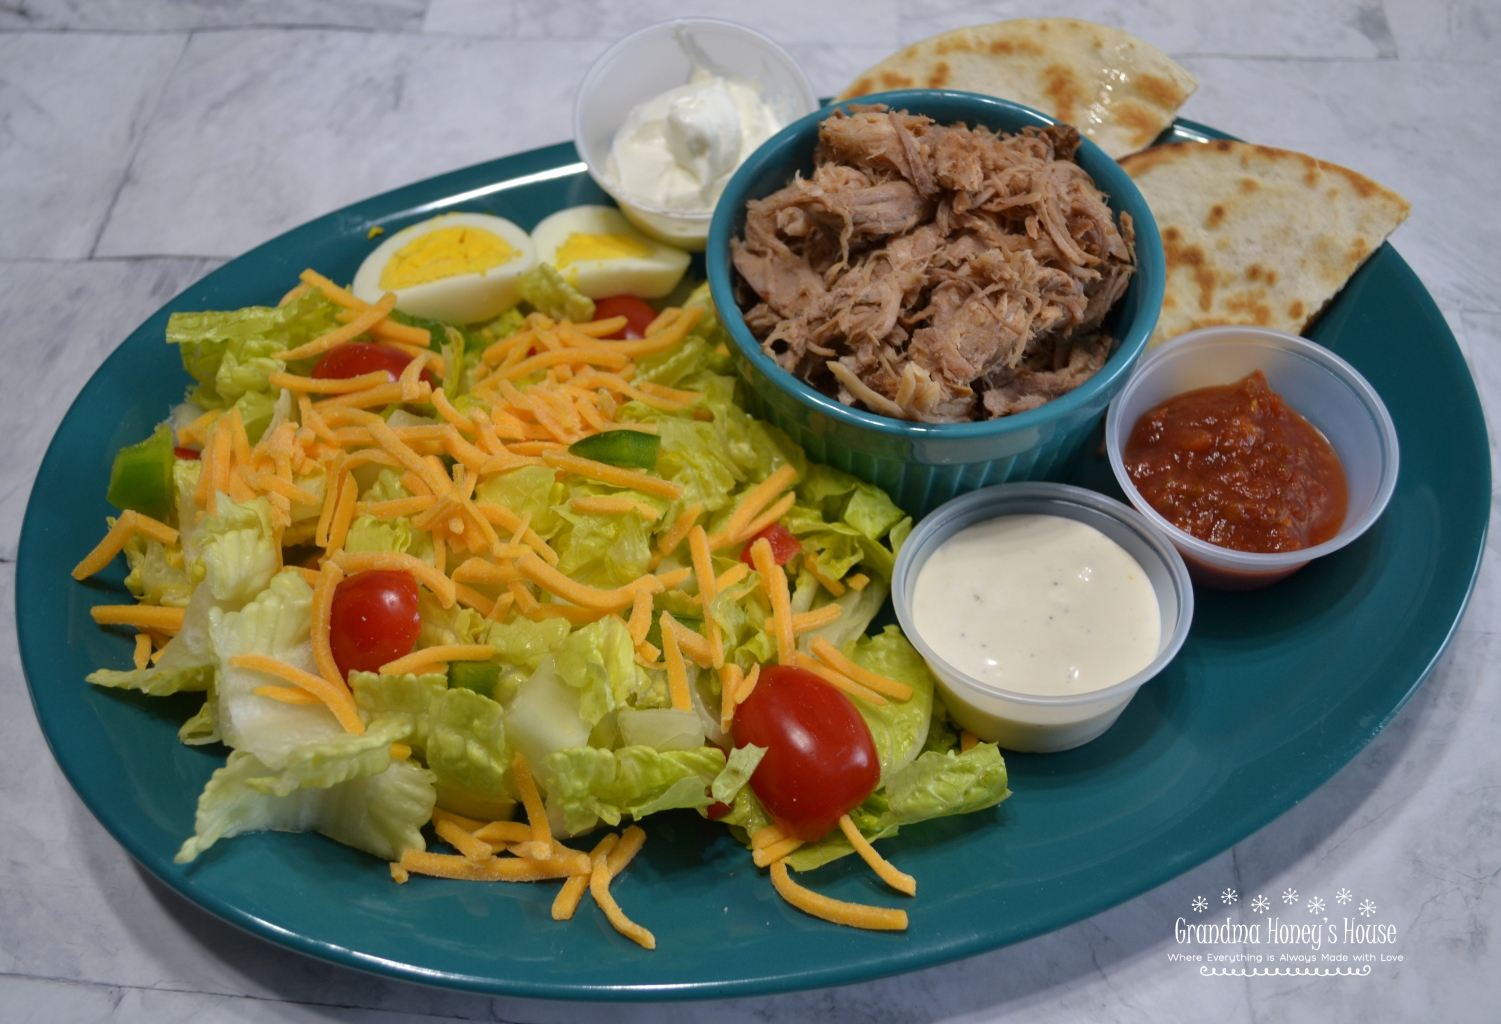 BBQ Pulled Pork Salad is a slow cooked,tender pork butt with sauce served on a bed of lettuce,veggies,cheese and topped with ranch dressing.